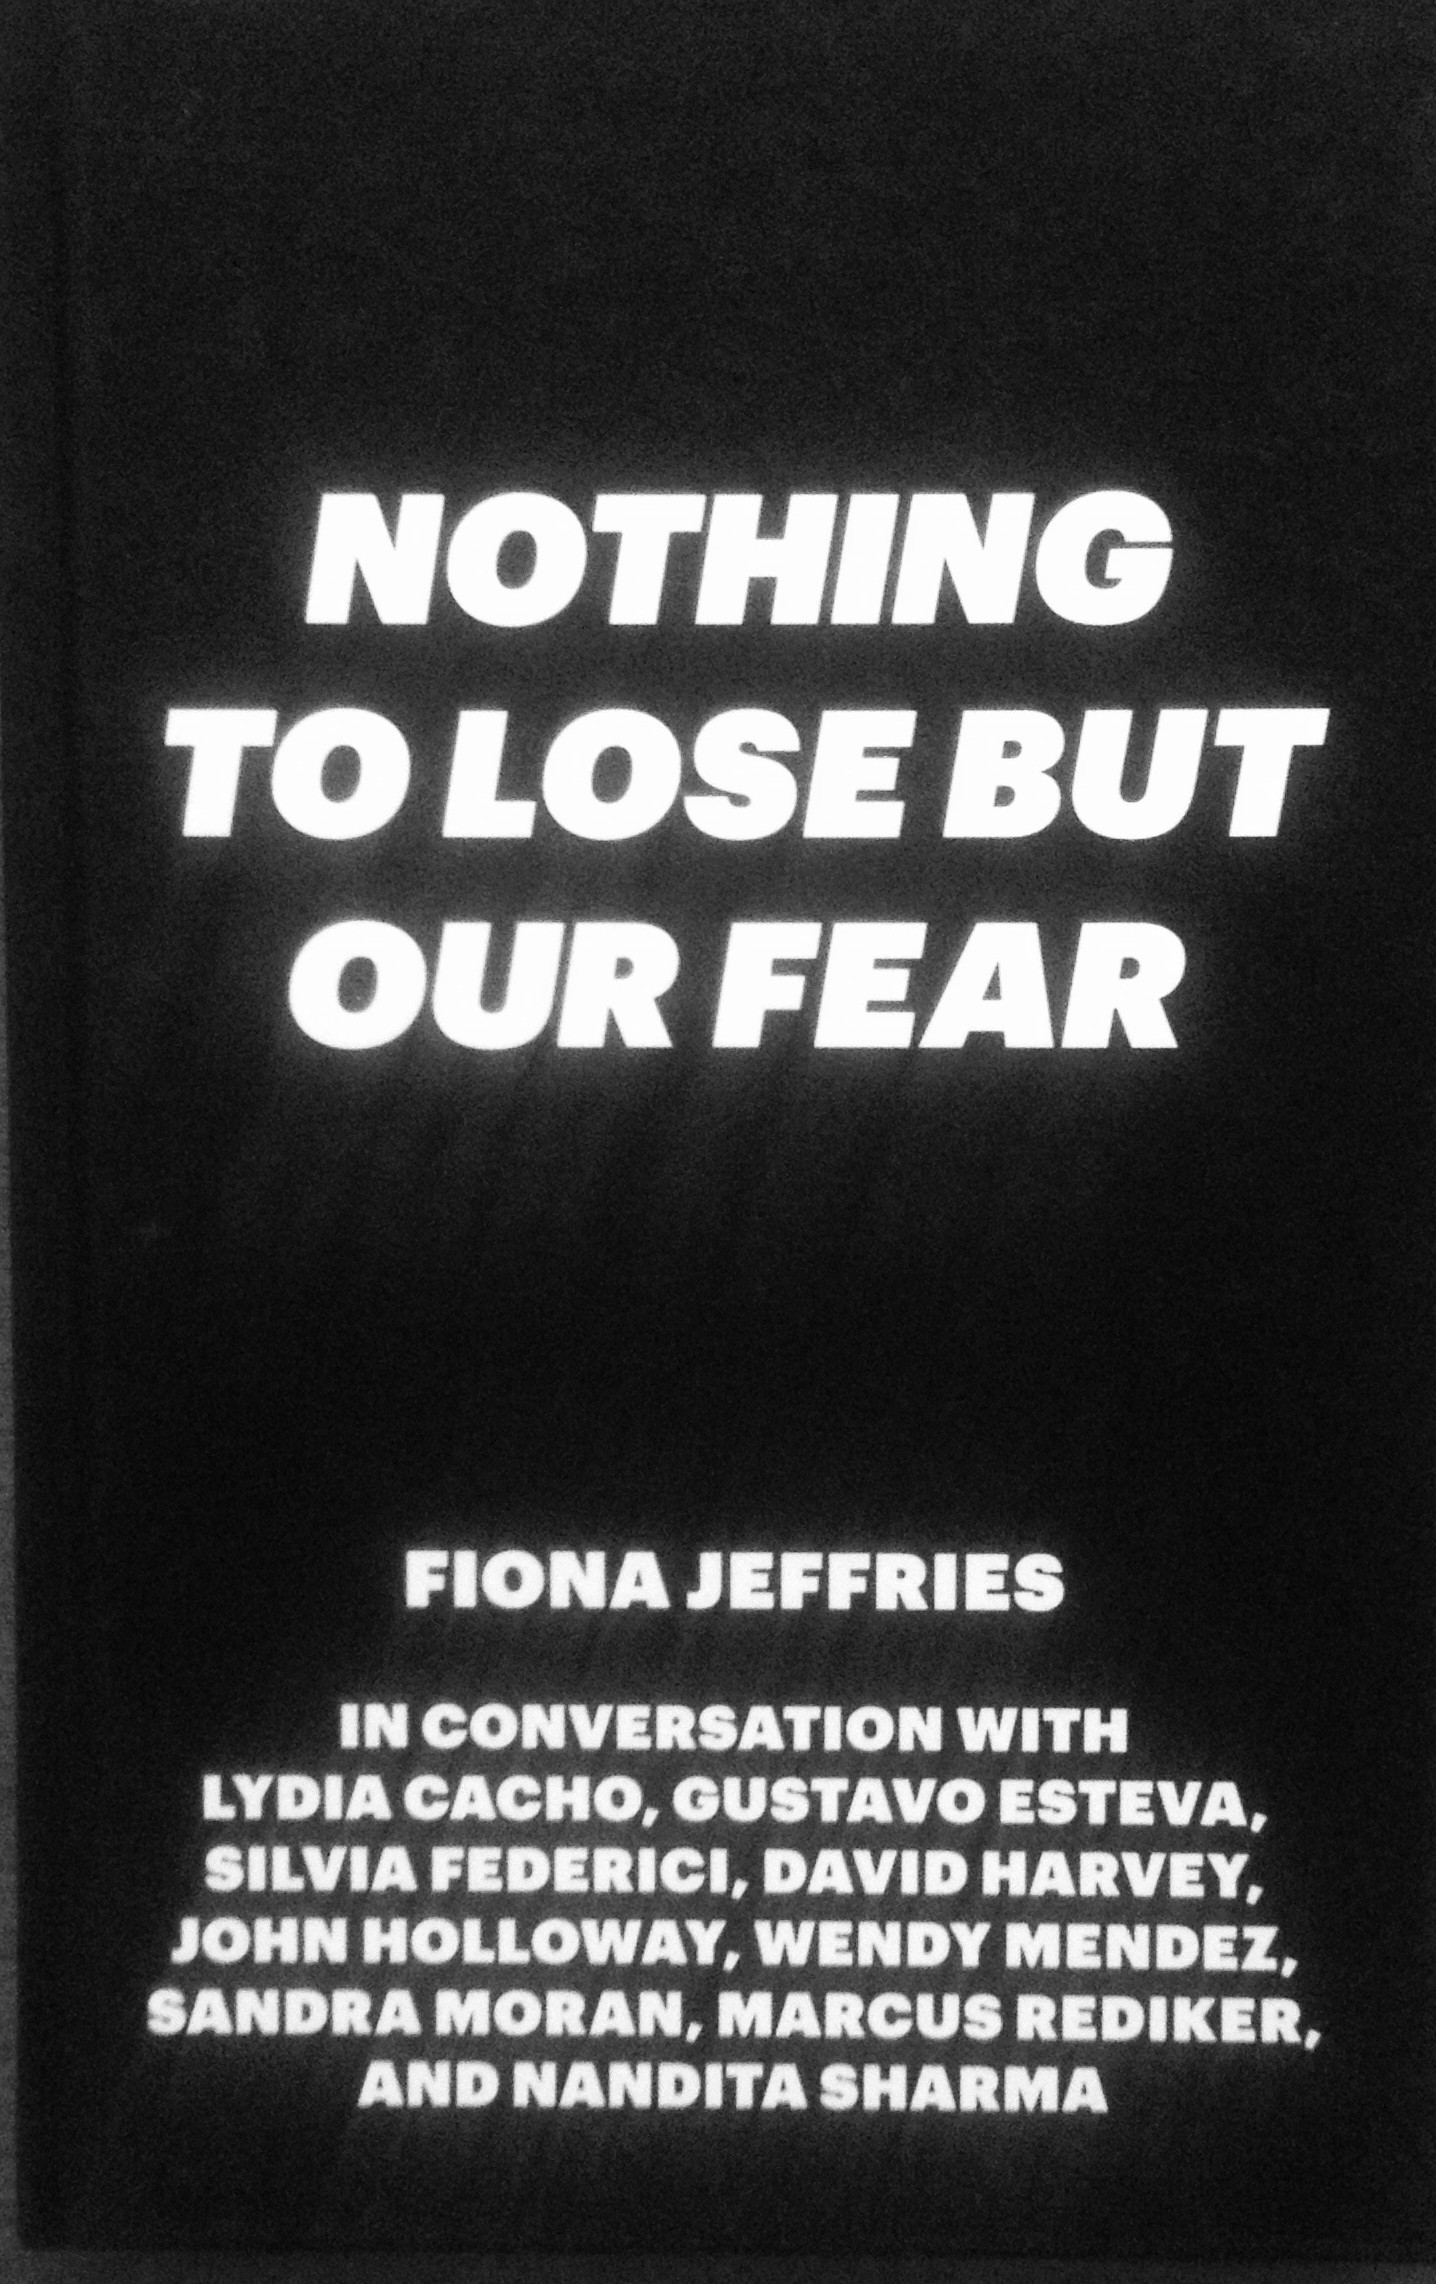 """Nothing to Lose but our Fear"" Fiona Jeffries in conversation with Silvia Federici and David Harvey"